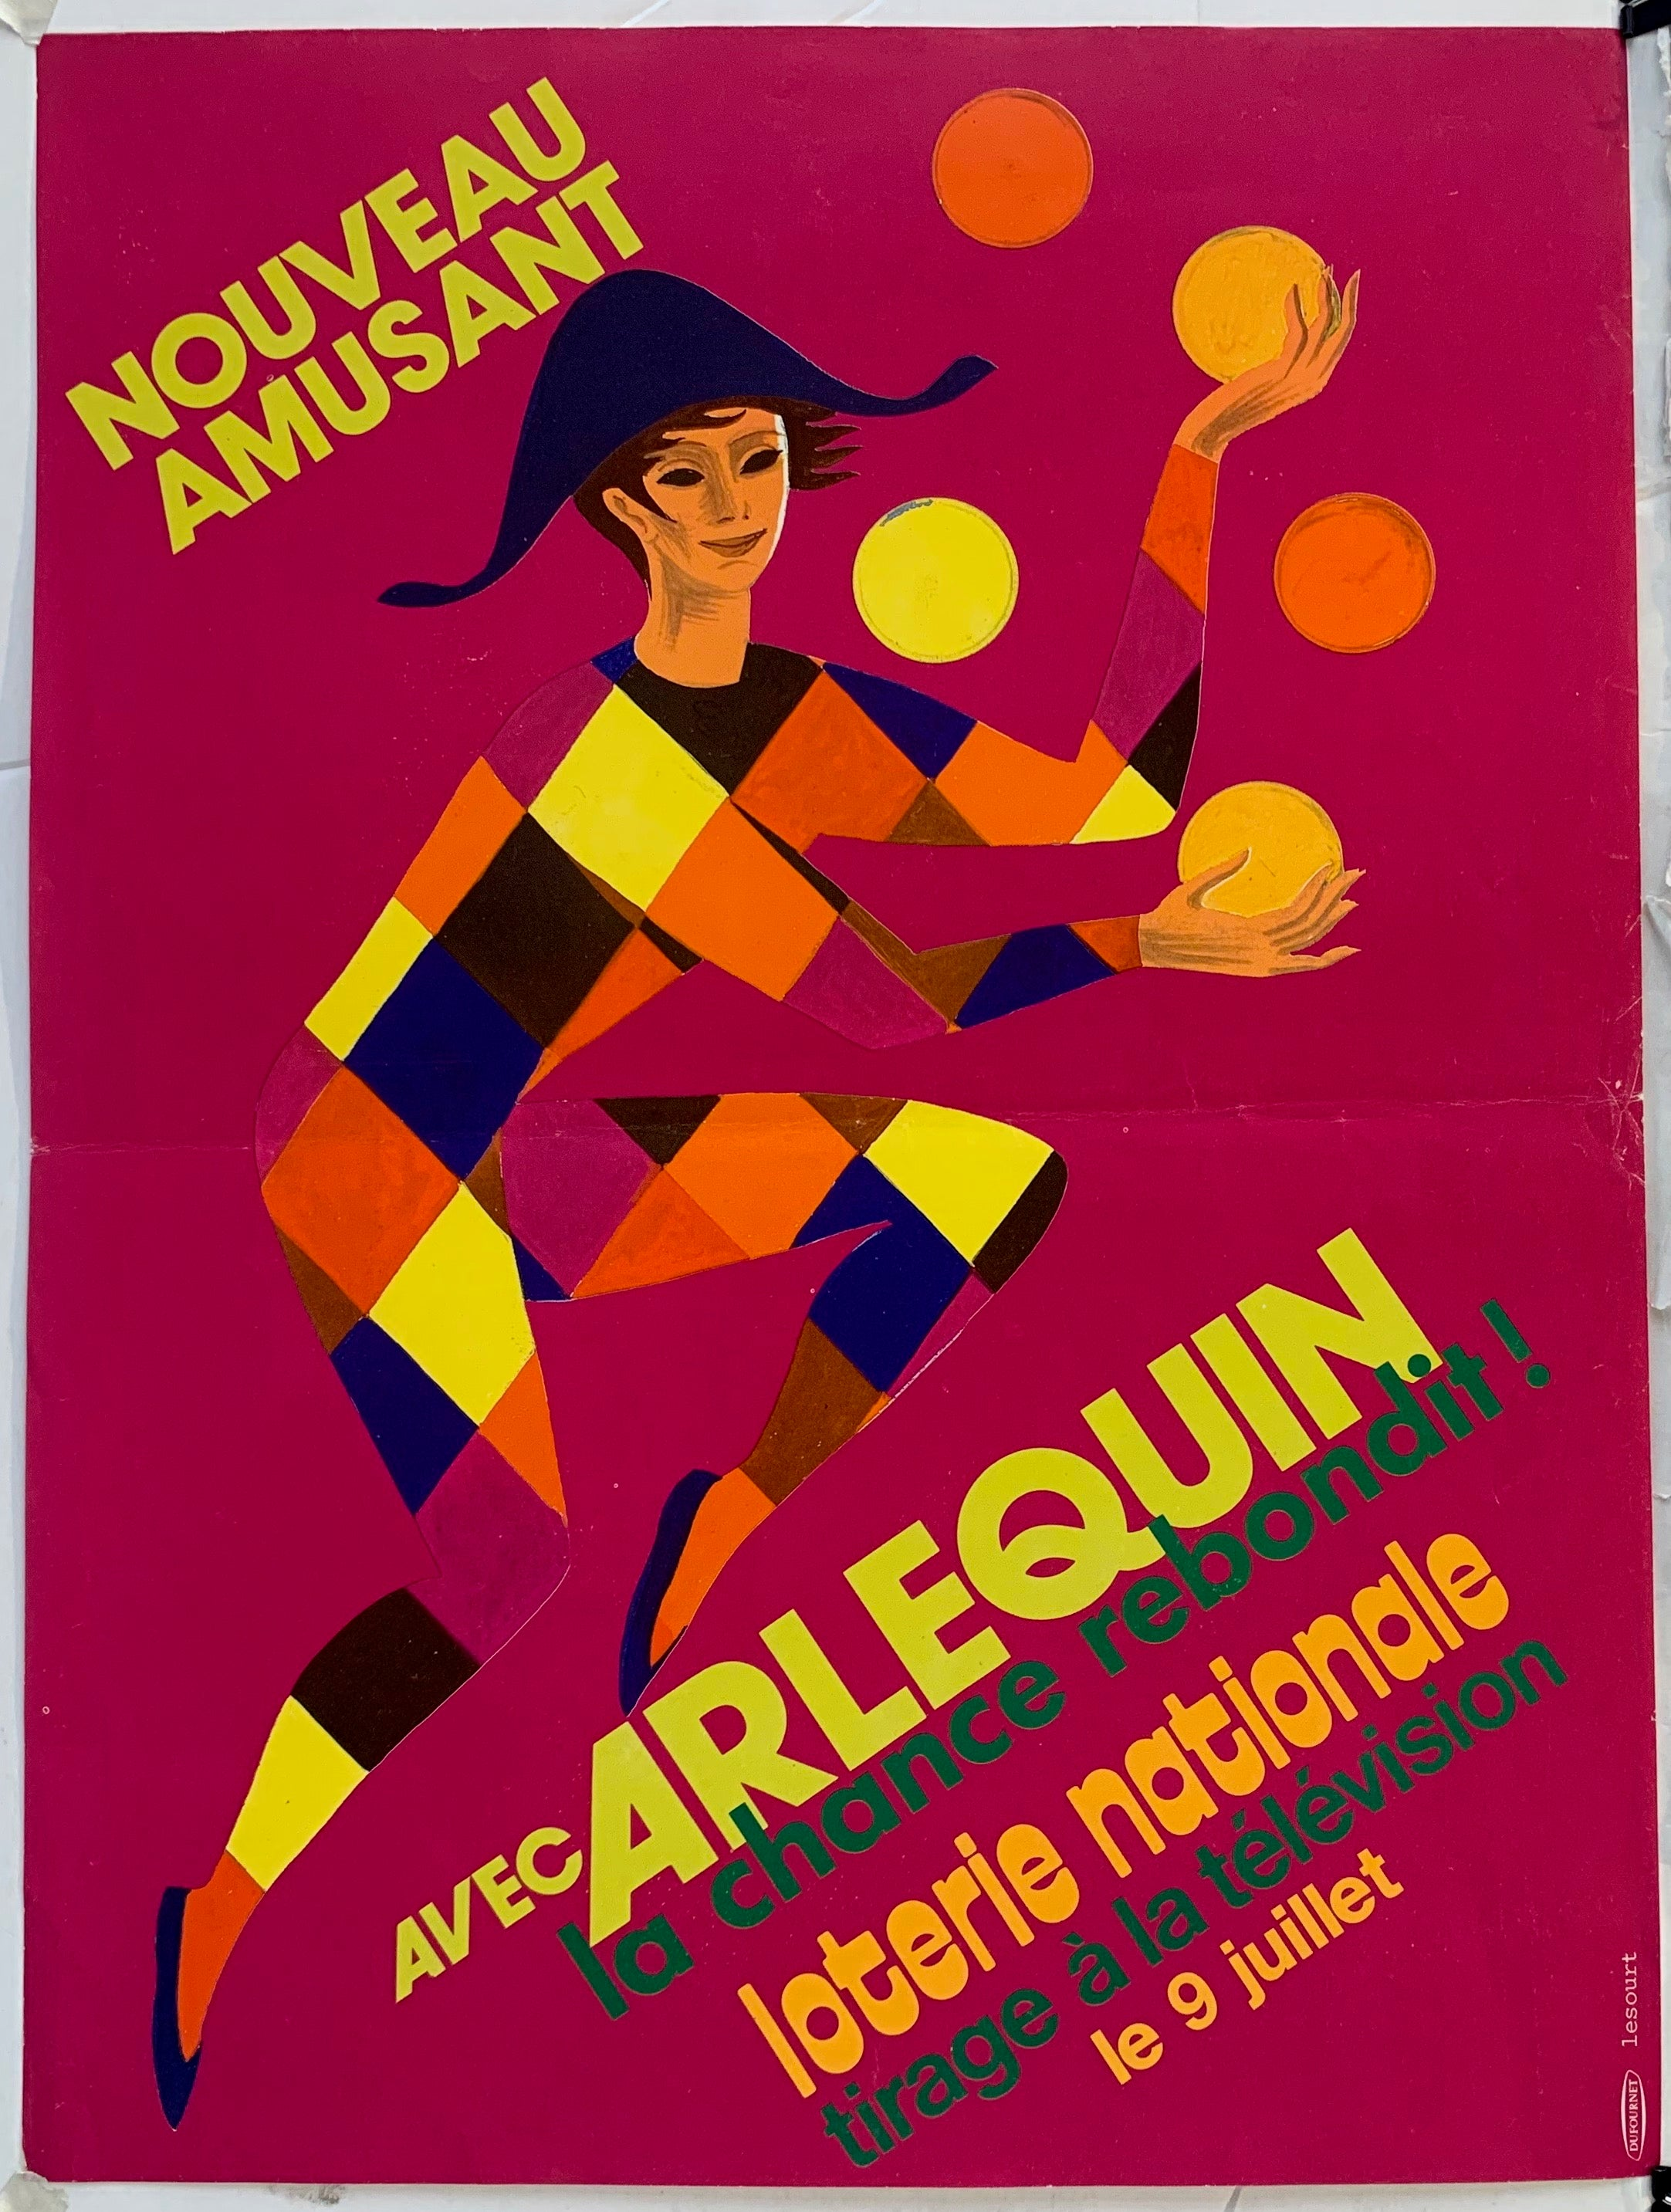 Arlequin Loterie Nationale - Juggling in Pink